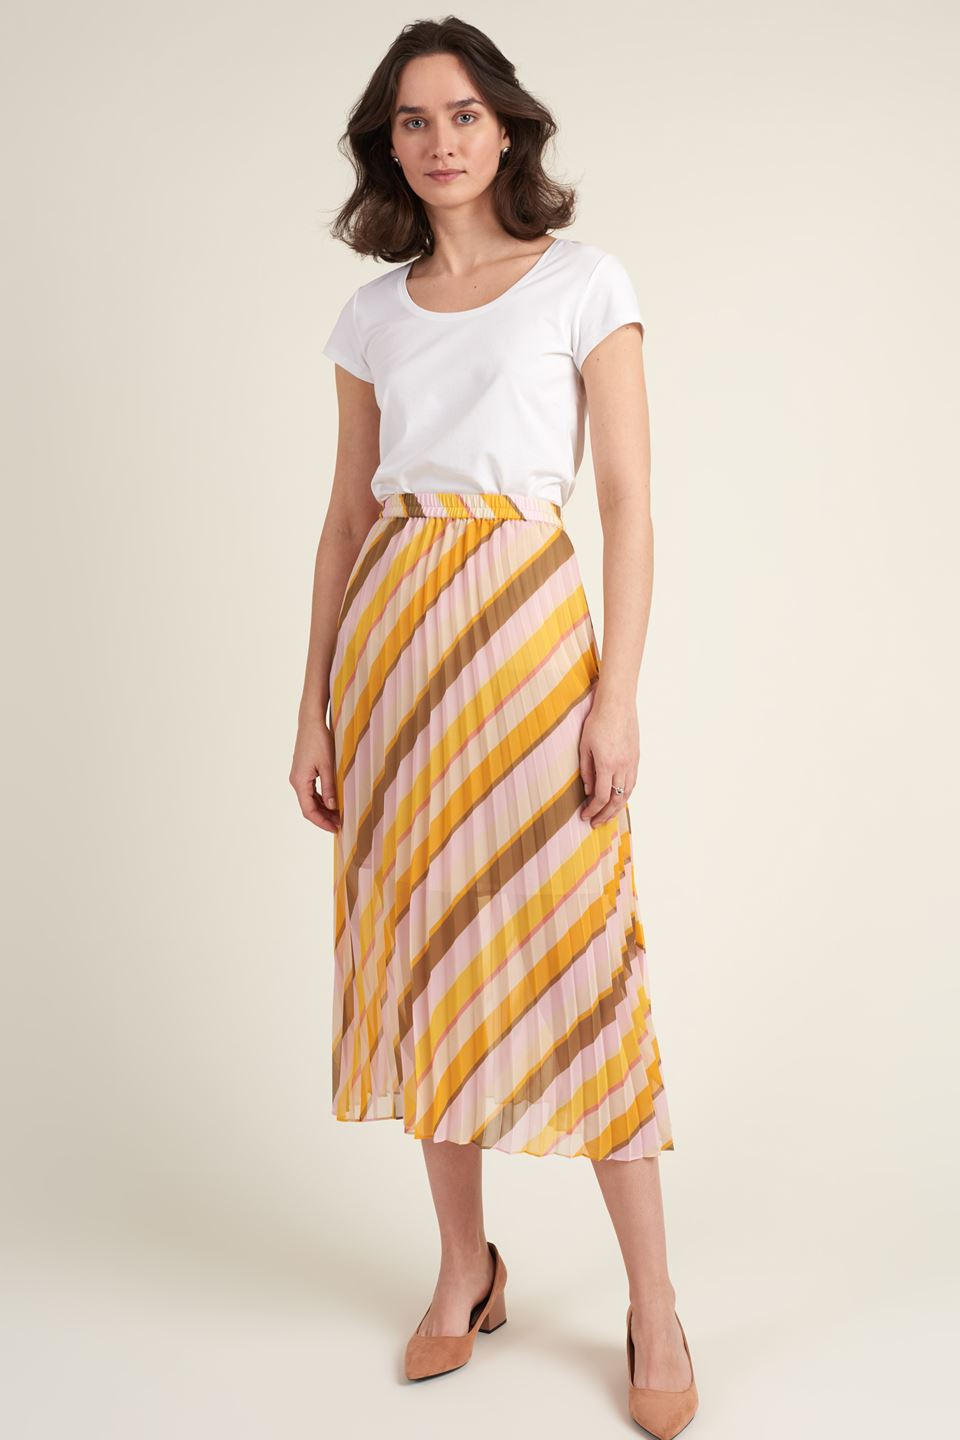 Buy Live Midi Skirt from SECOND FEMALE at PAYA boutique